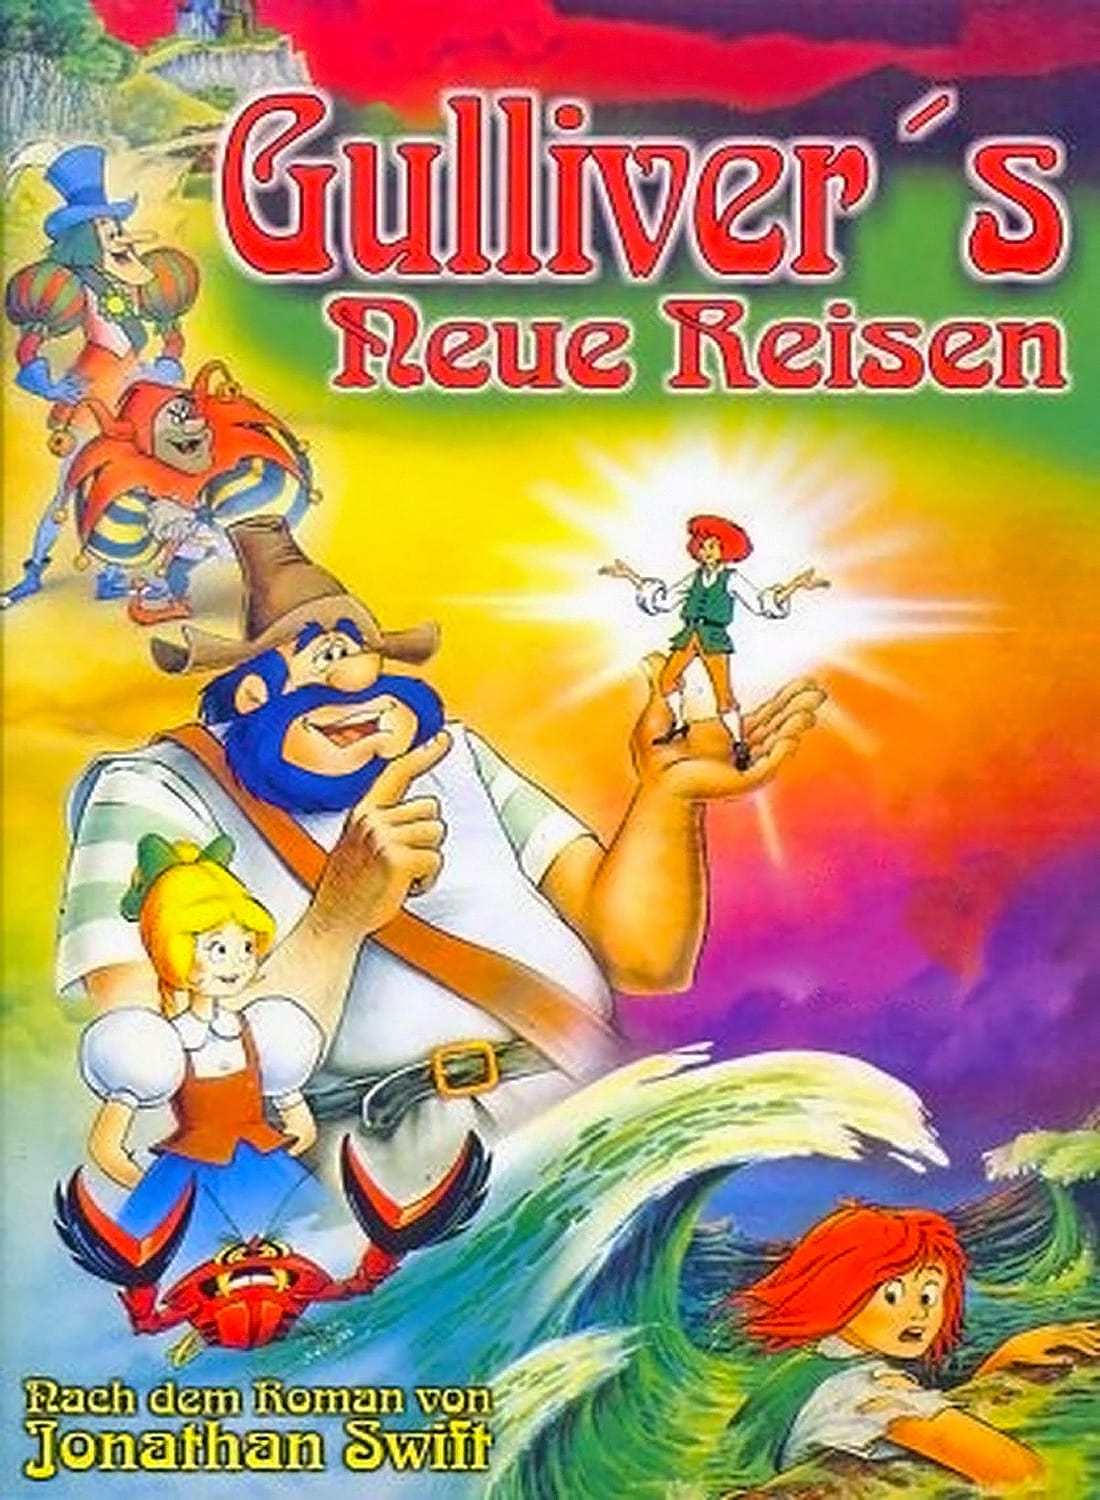 Gulliver's Travels (1983)